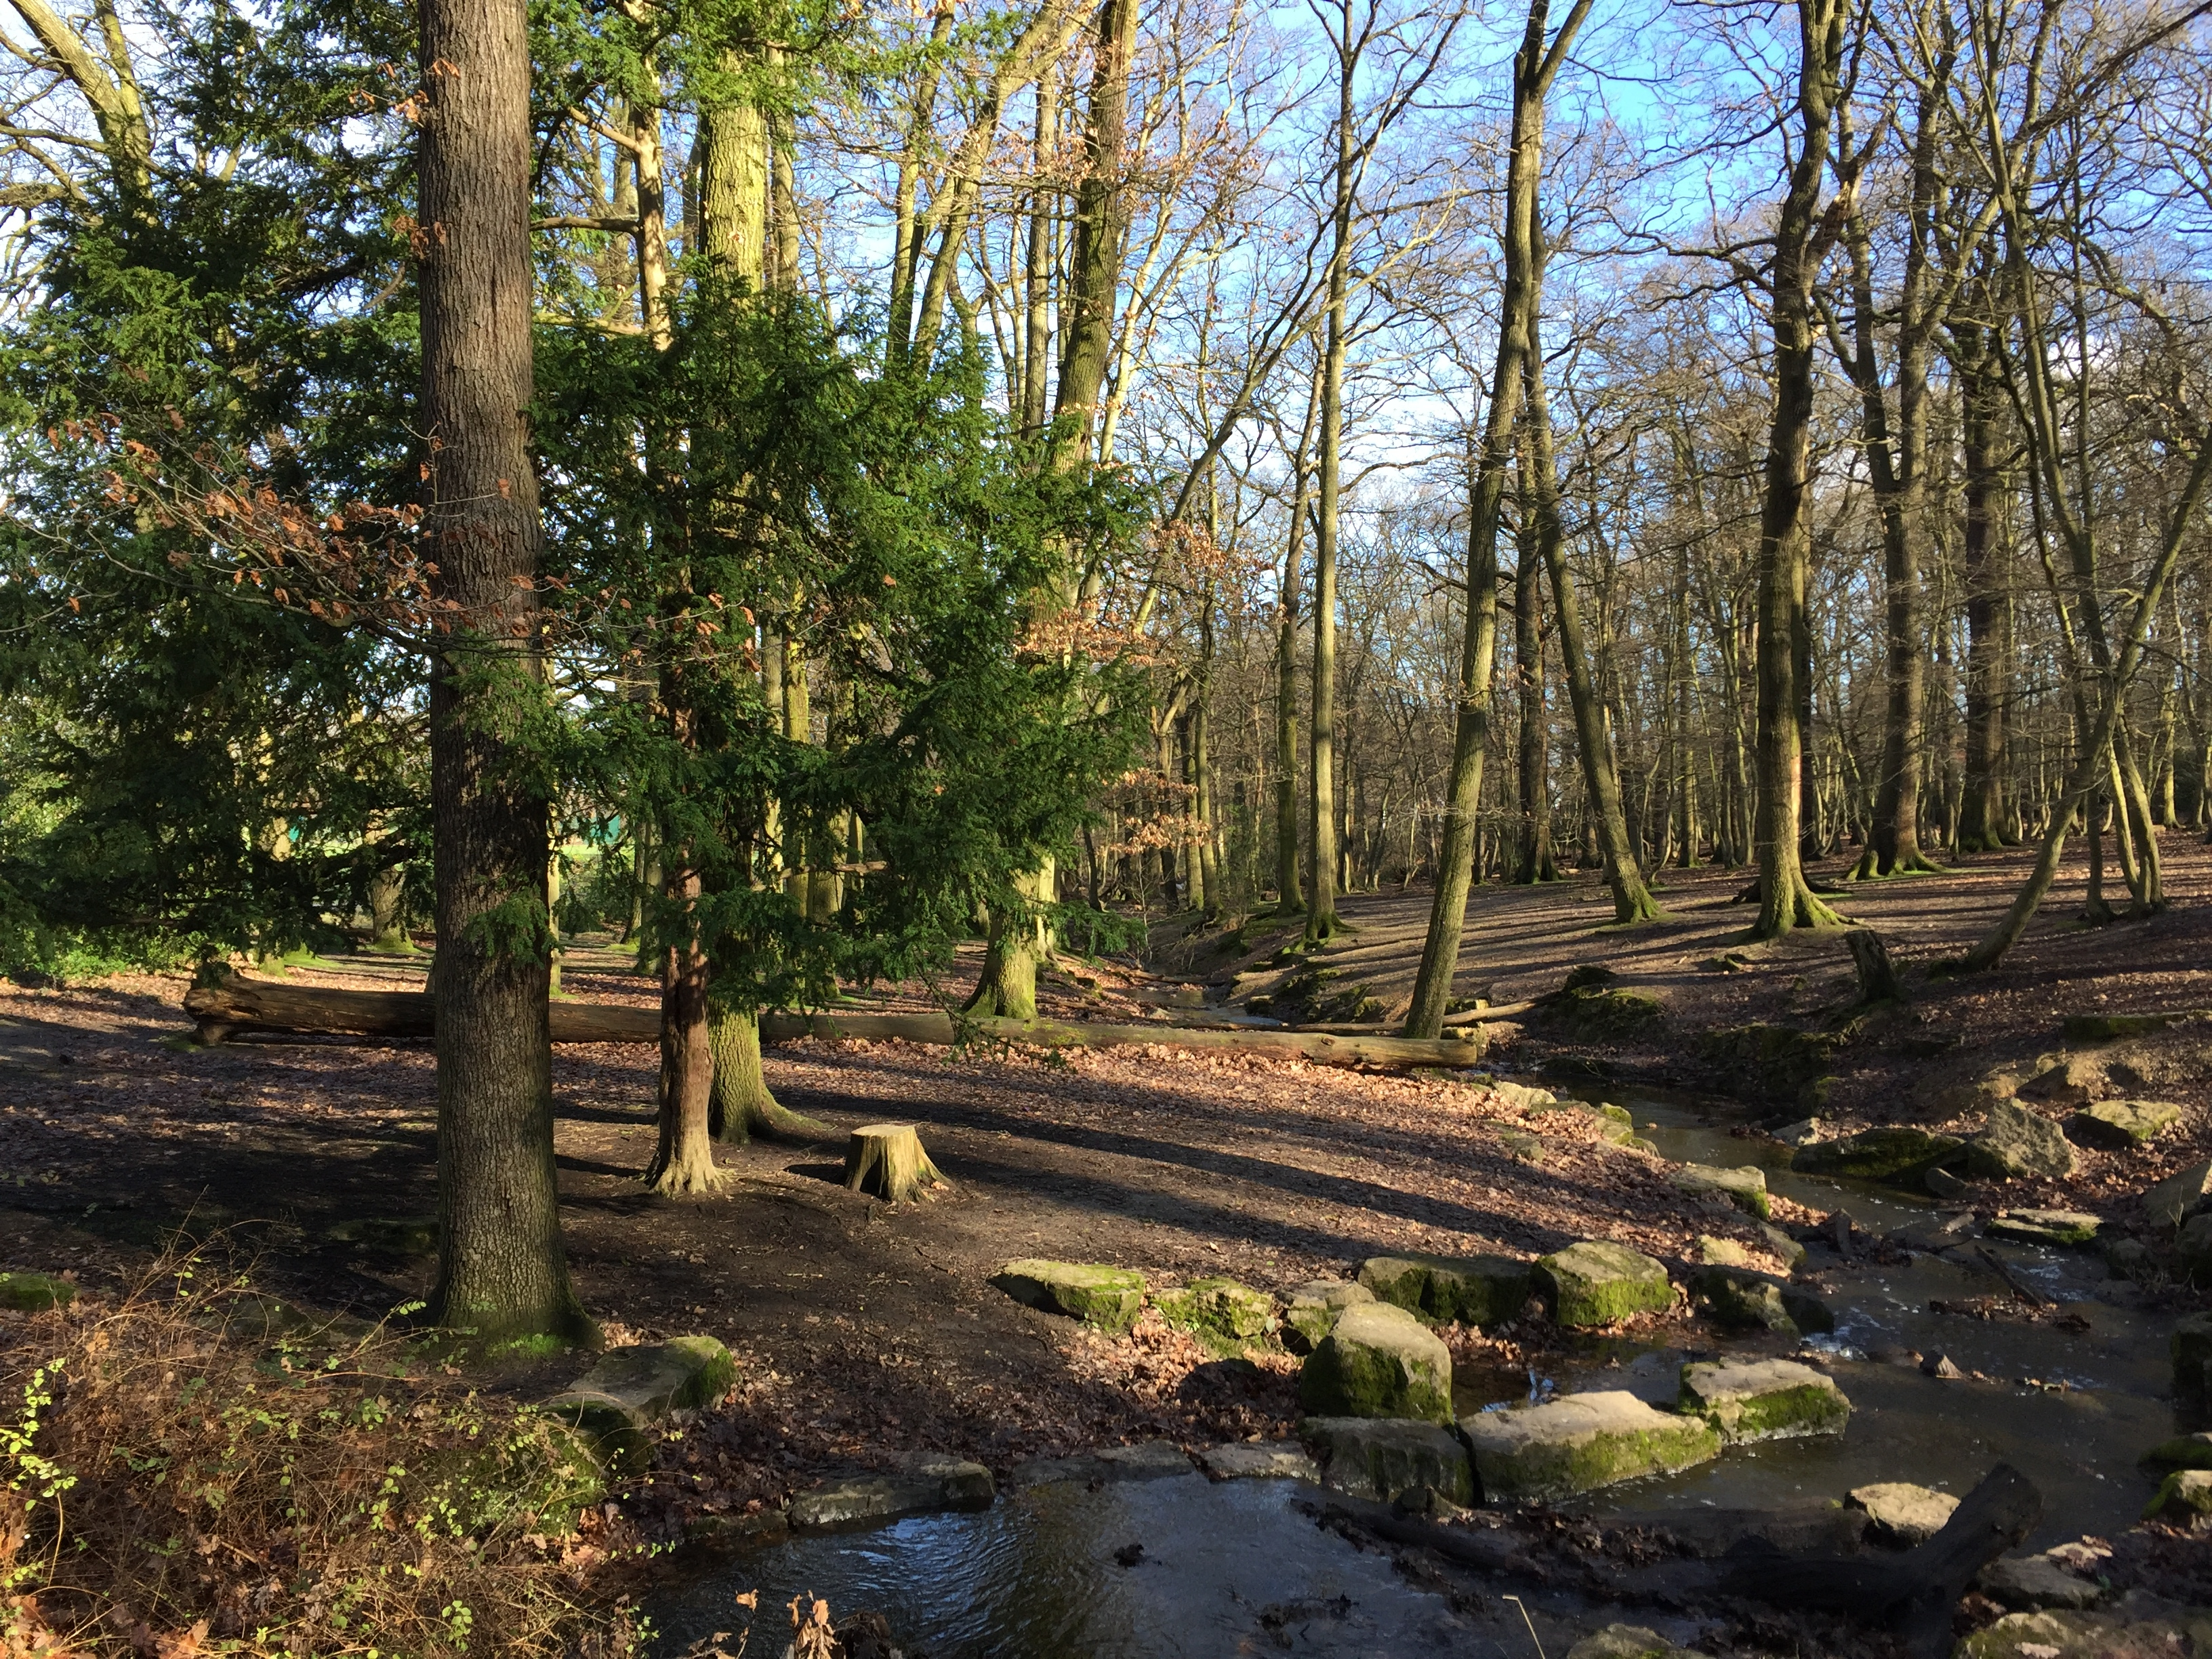 53 – Winchmore Hill to Palmers Green, parks and gardens; back via ...